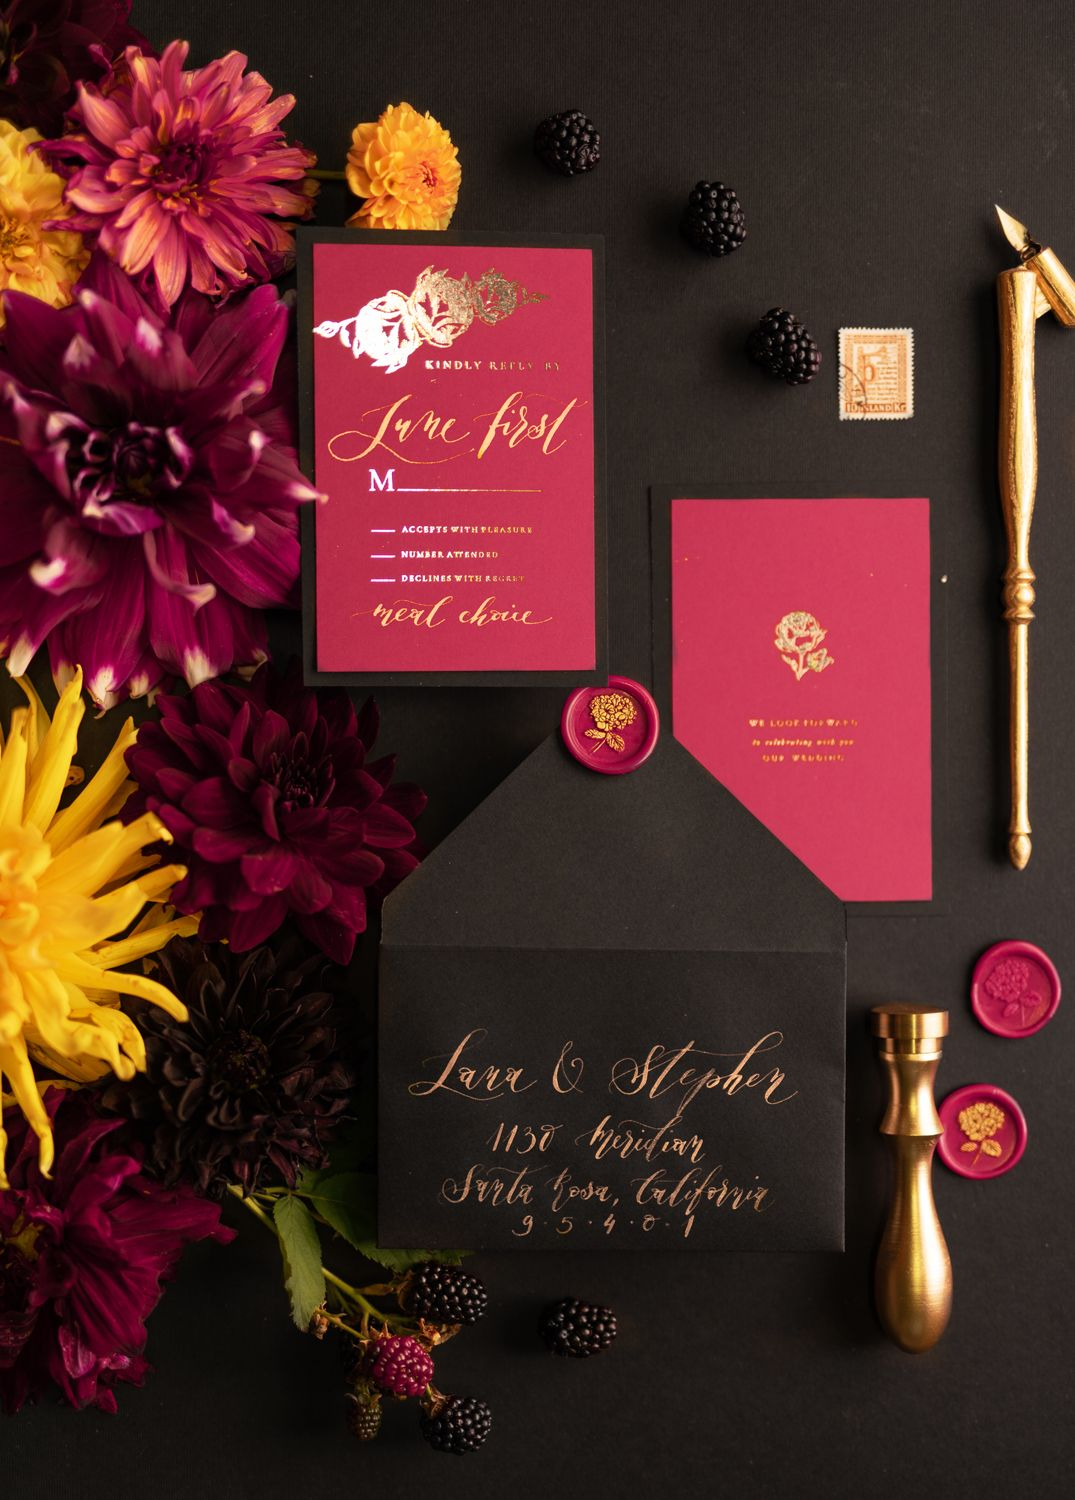 WEDDING INVITATIONS calligraphy | Wedding decor ideas | Pinterest ...